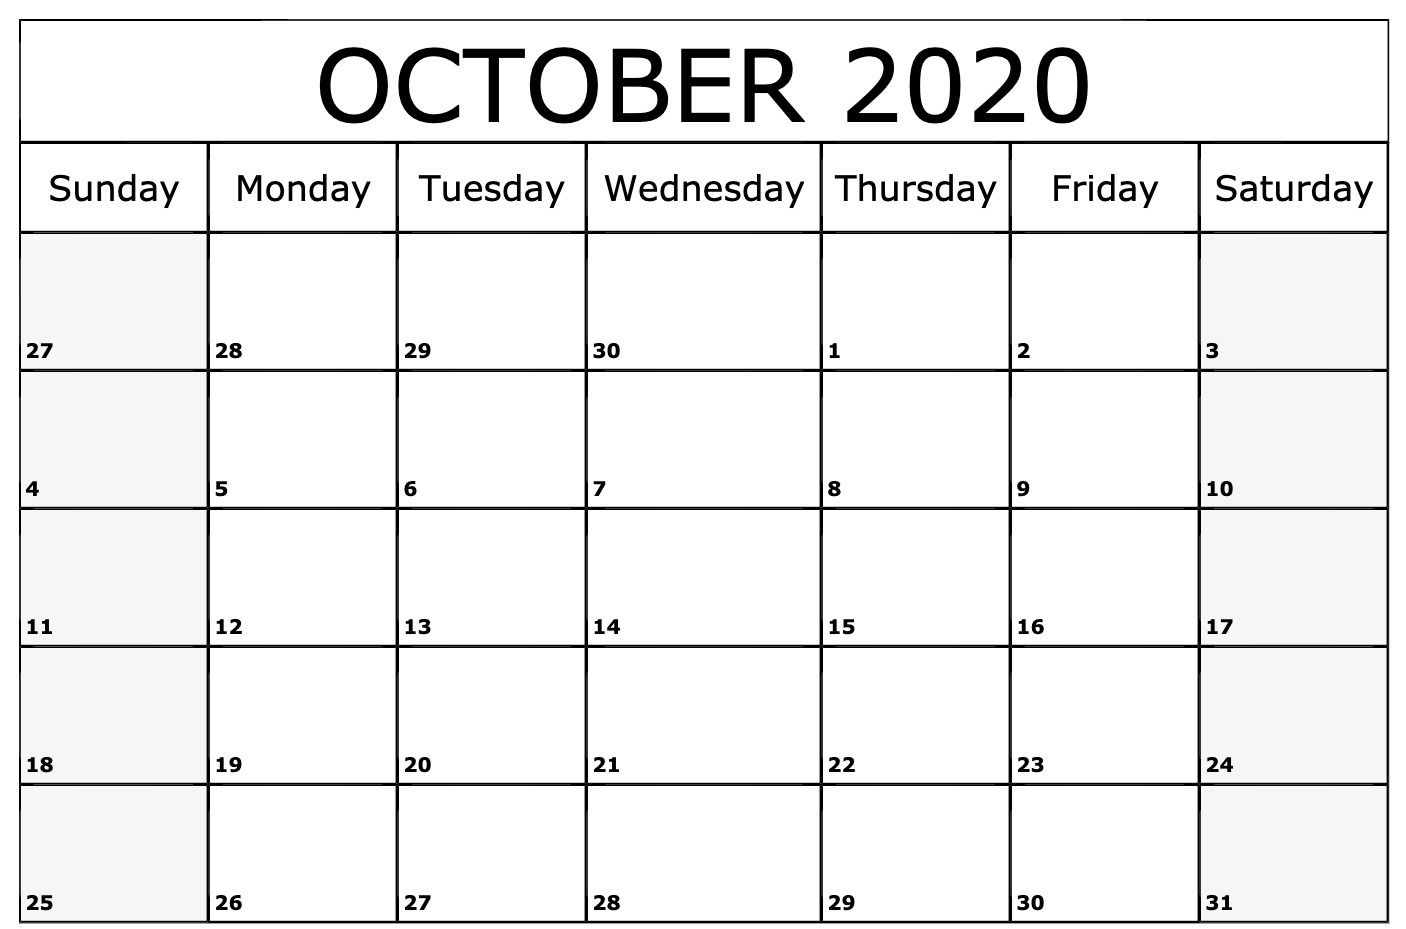 2020 October Calendar | 2020 Calendar Template, Monthly